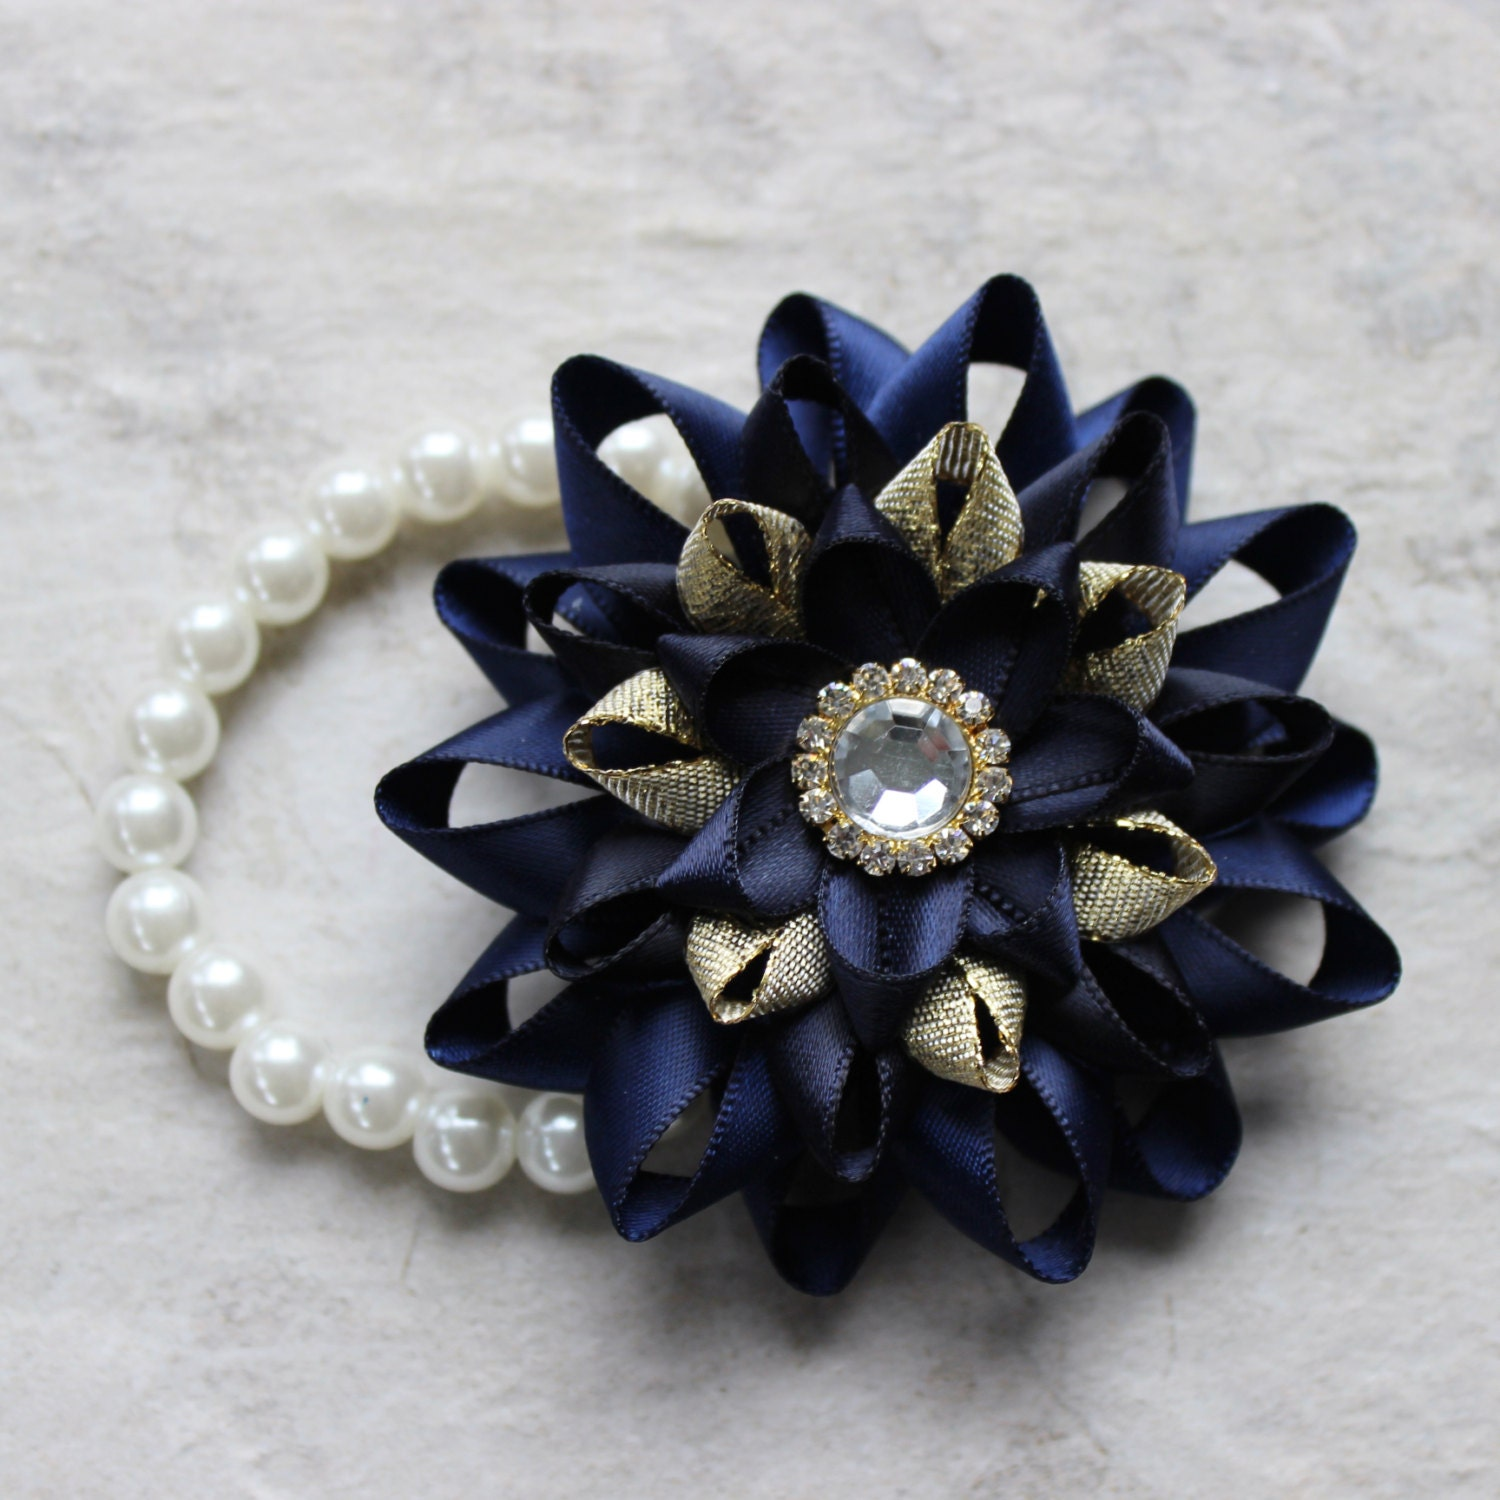 Wrist corsage navy blue corsage navy blue and gold prom corsage wrist corsage navy blue corsage navy blue and gold prom corsage homecoming corsage wrist flowers dark blue navy wedding corsages izmirmasajfo Gallery